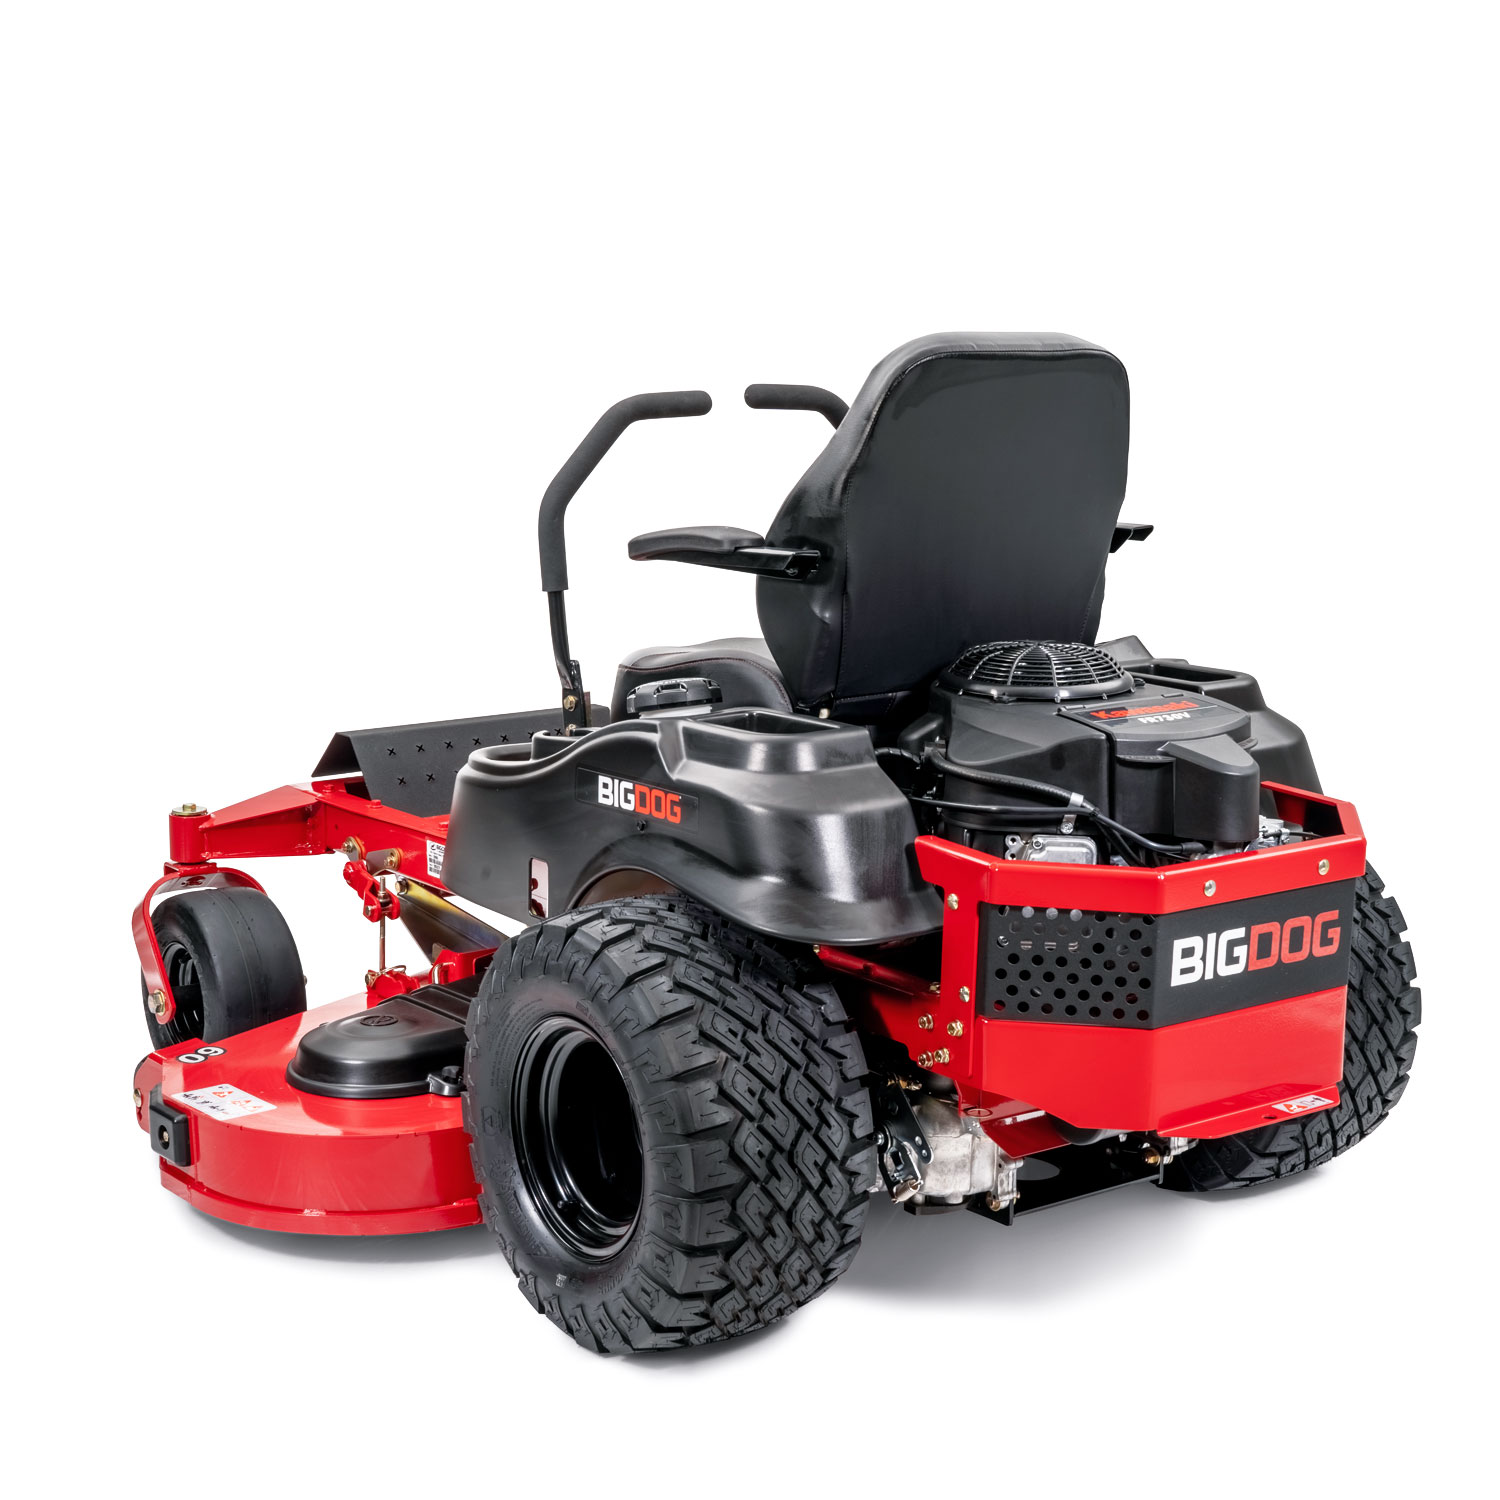 Image of the profile of a riding mower on the discharge side of the deck